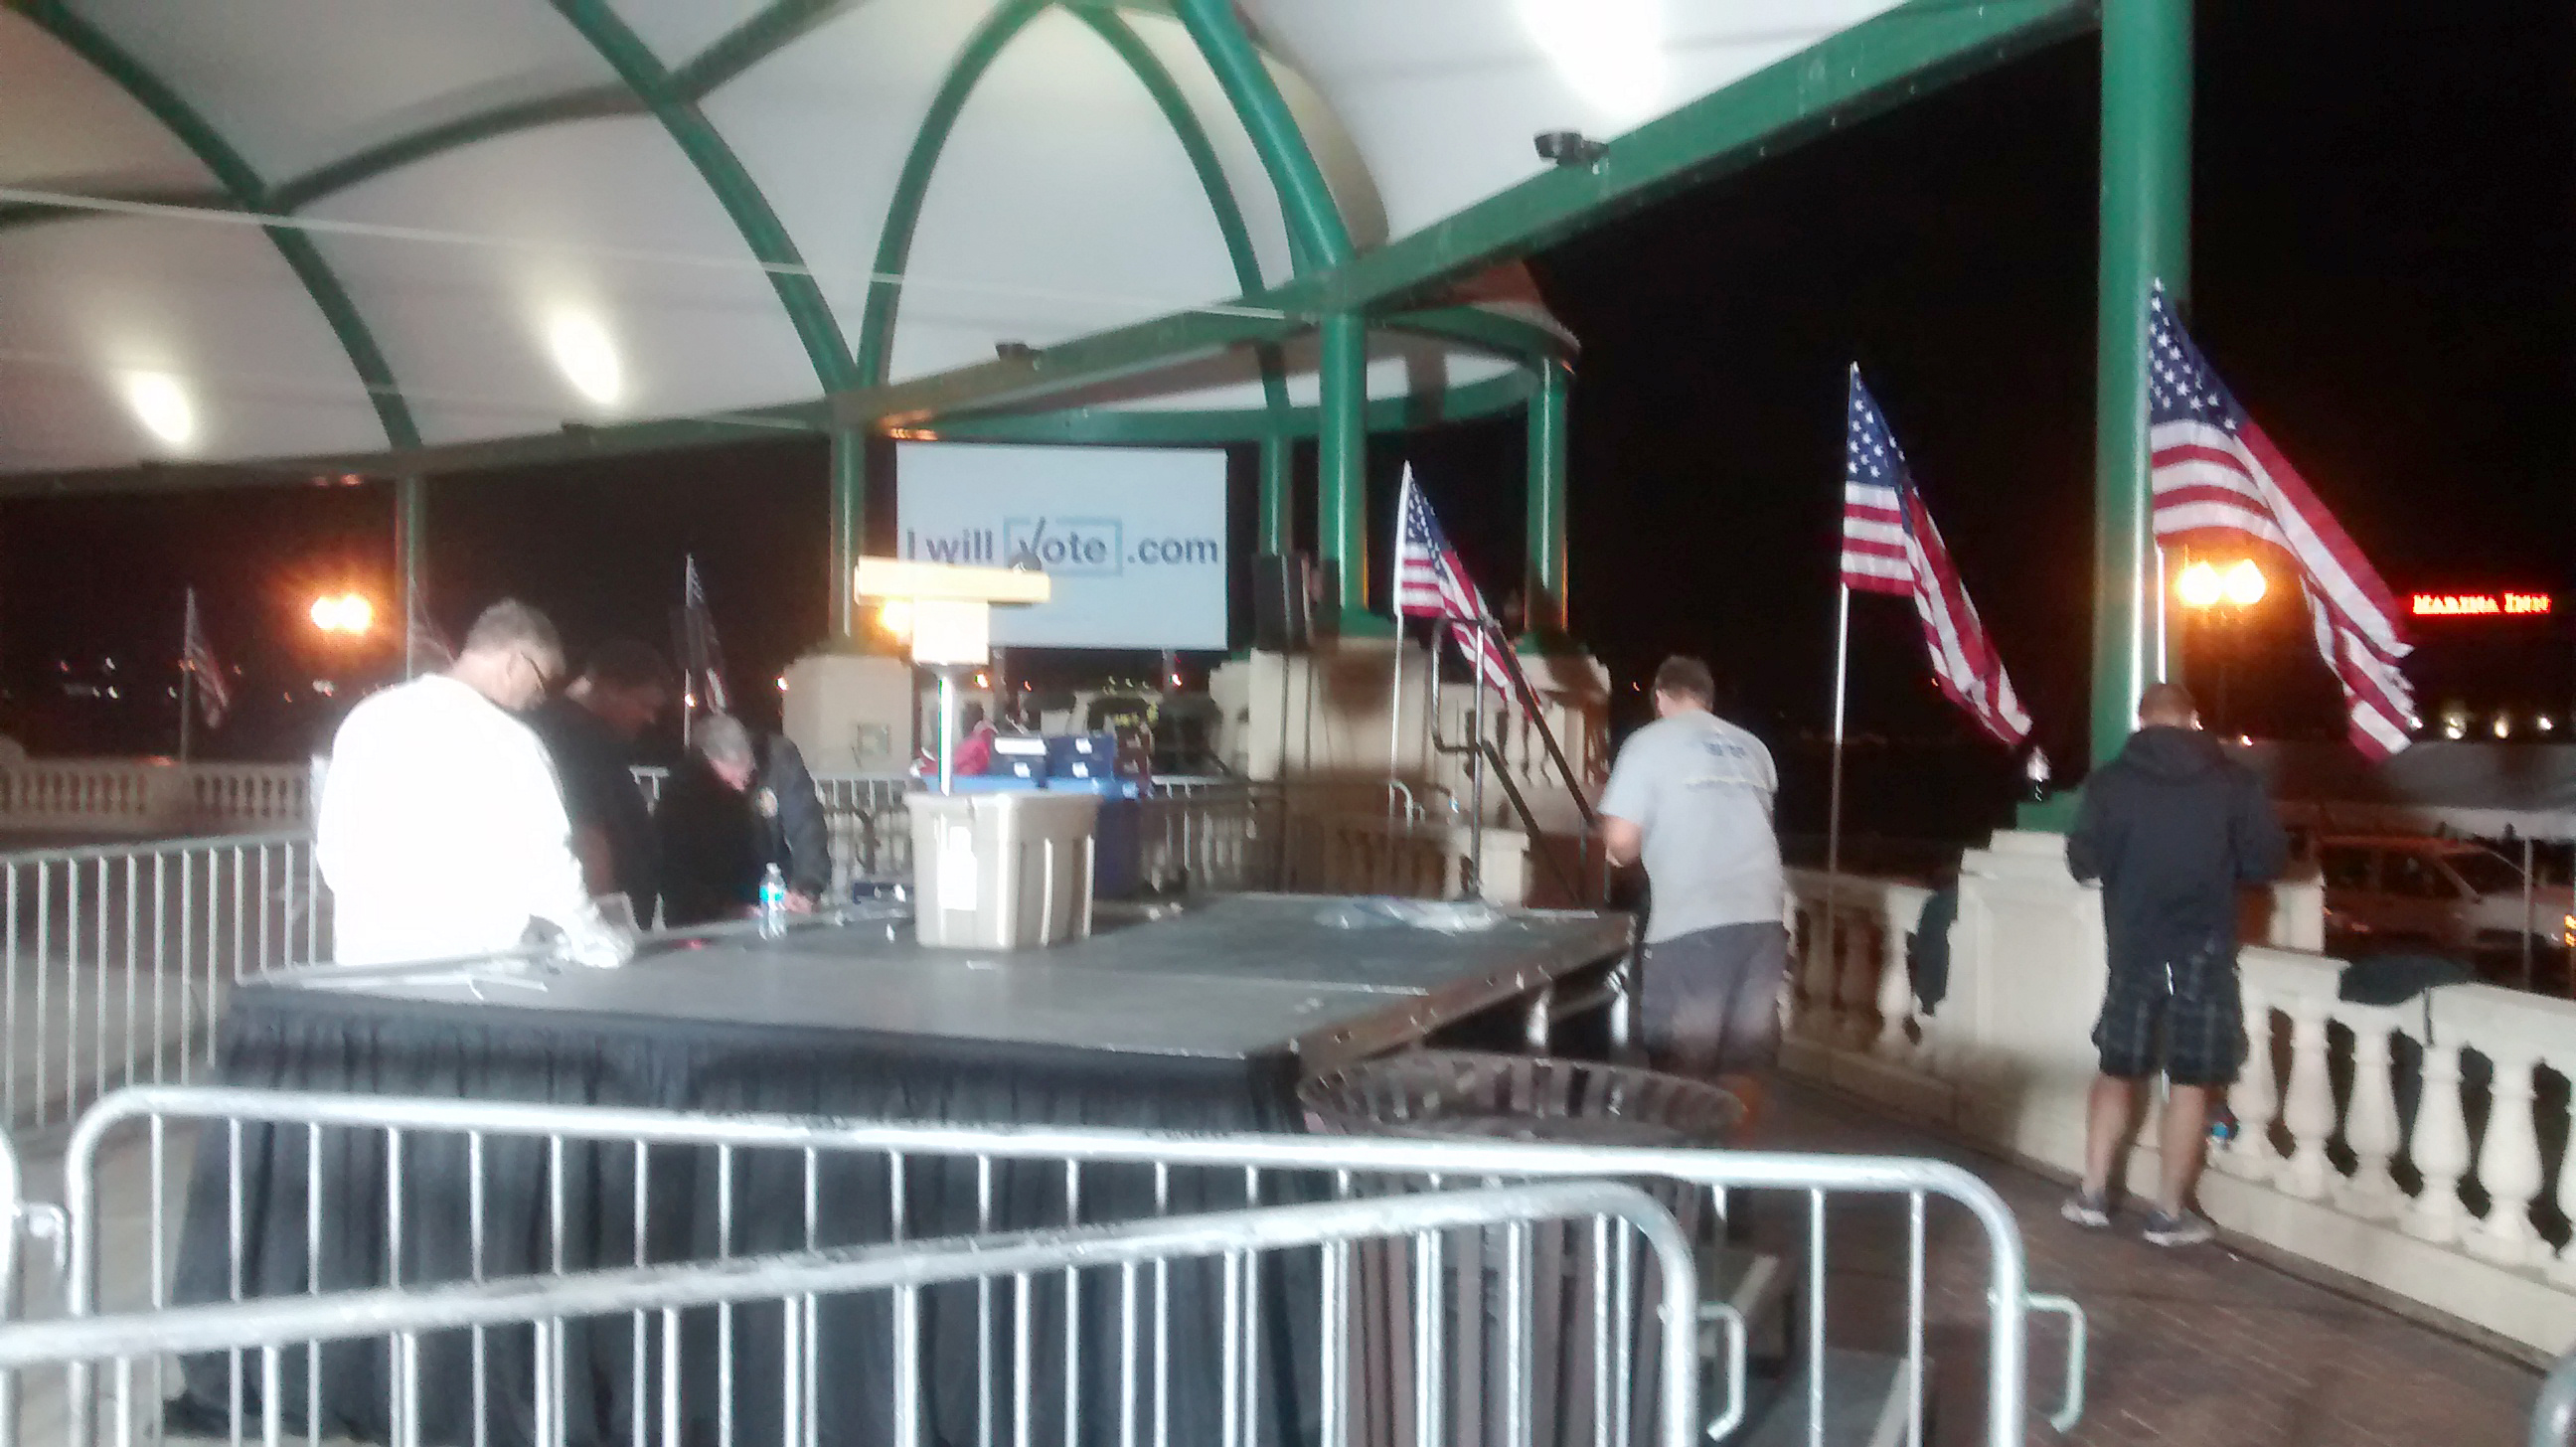 Stage with flags for political event at Larsen Park Road, Sioux City, Iowa